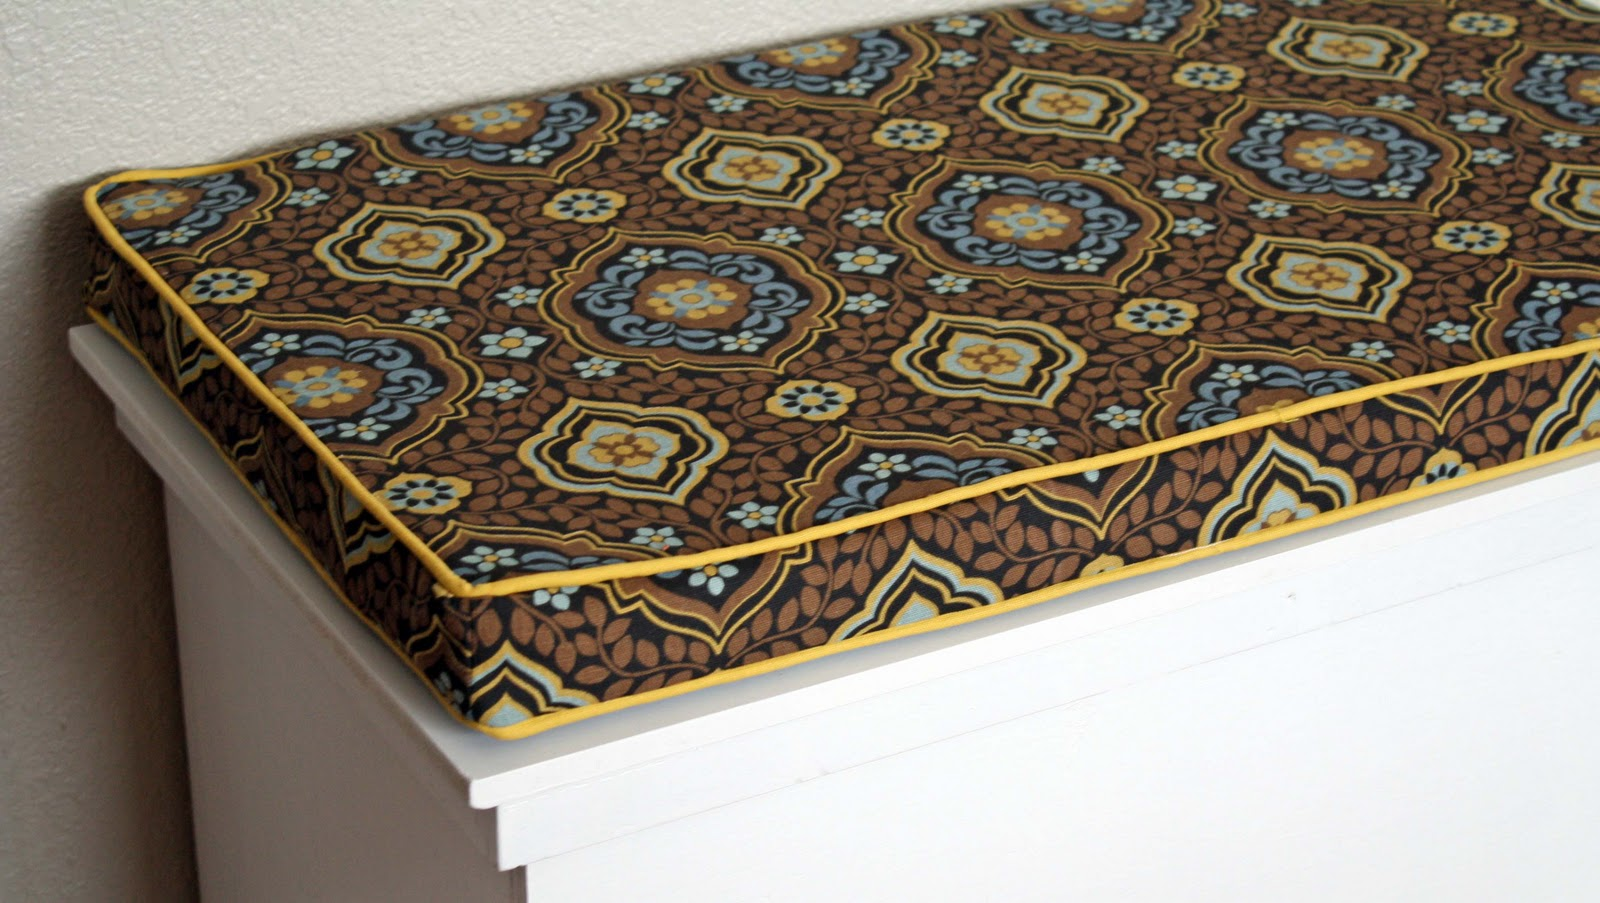 Pattern for Bench Seat Cushion Box